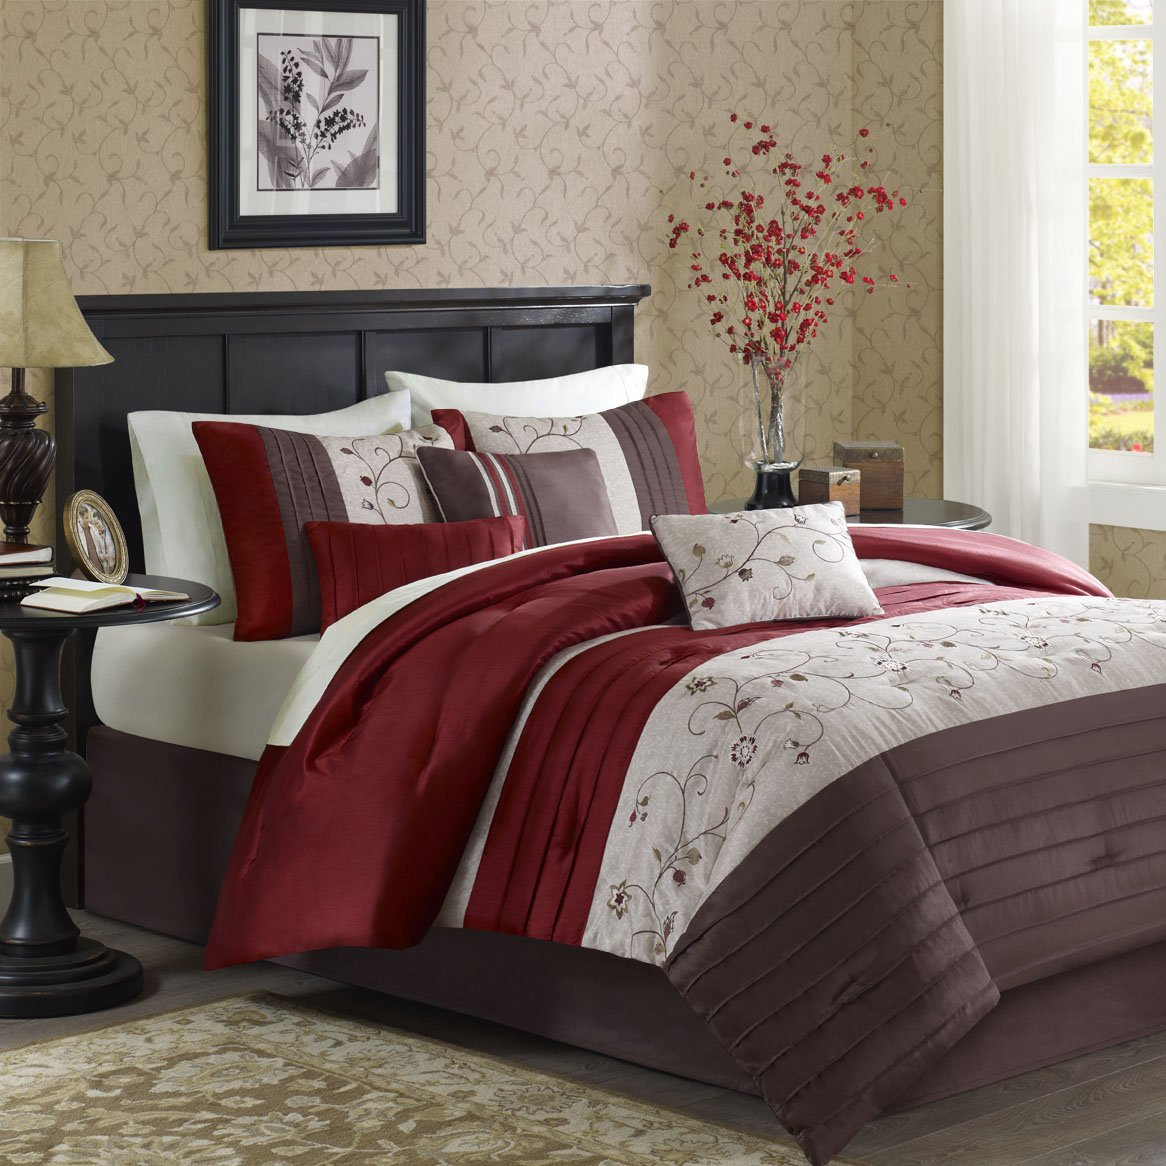 Brown and red bedding - Amazon Com Madison Park Serene 6 Piece Duvet Cover Set King California King Red Home Kitchen